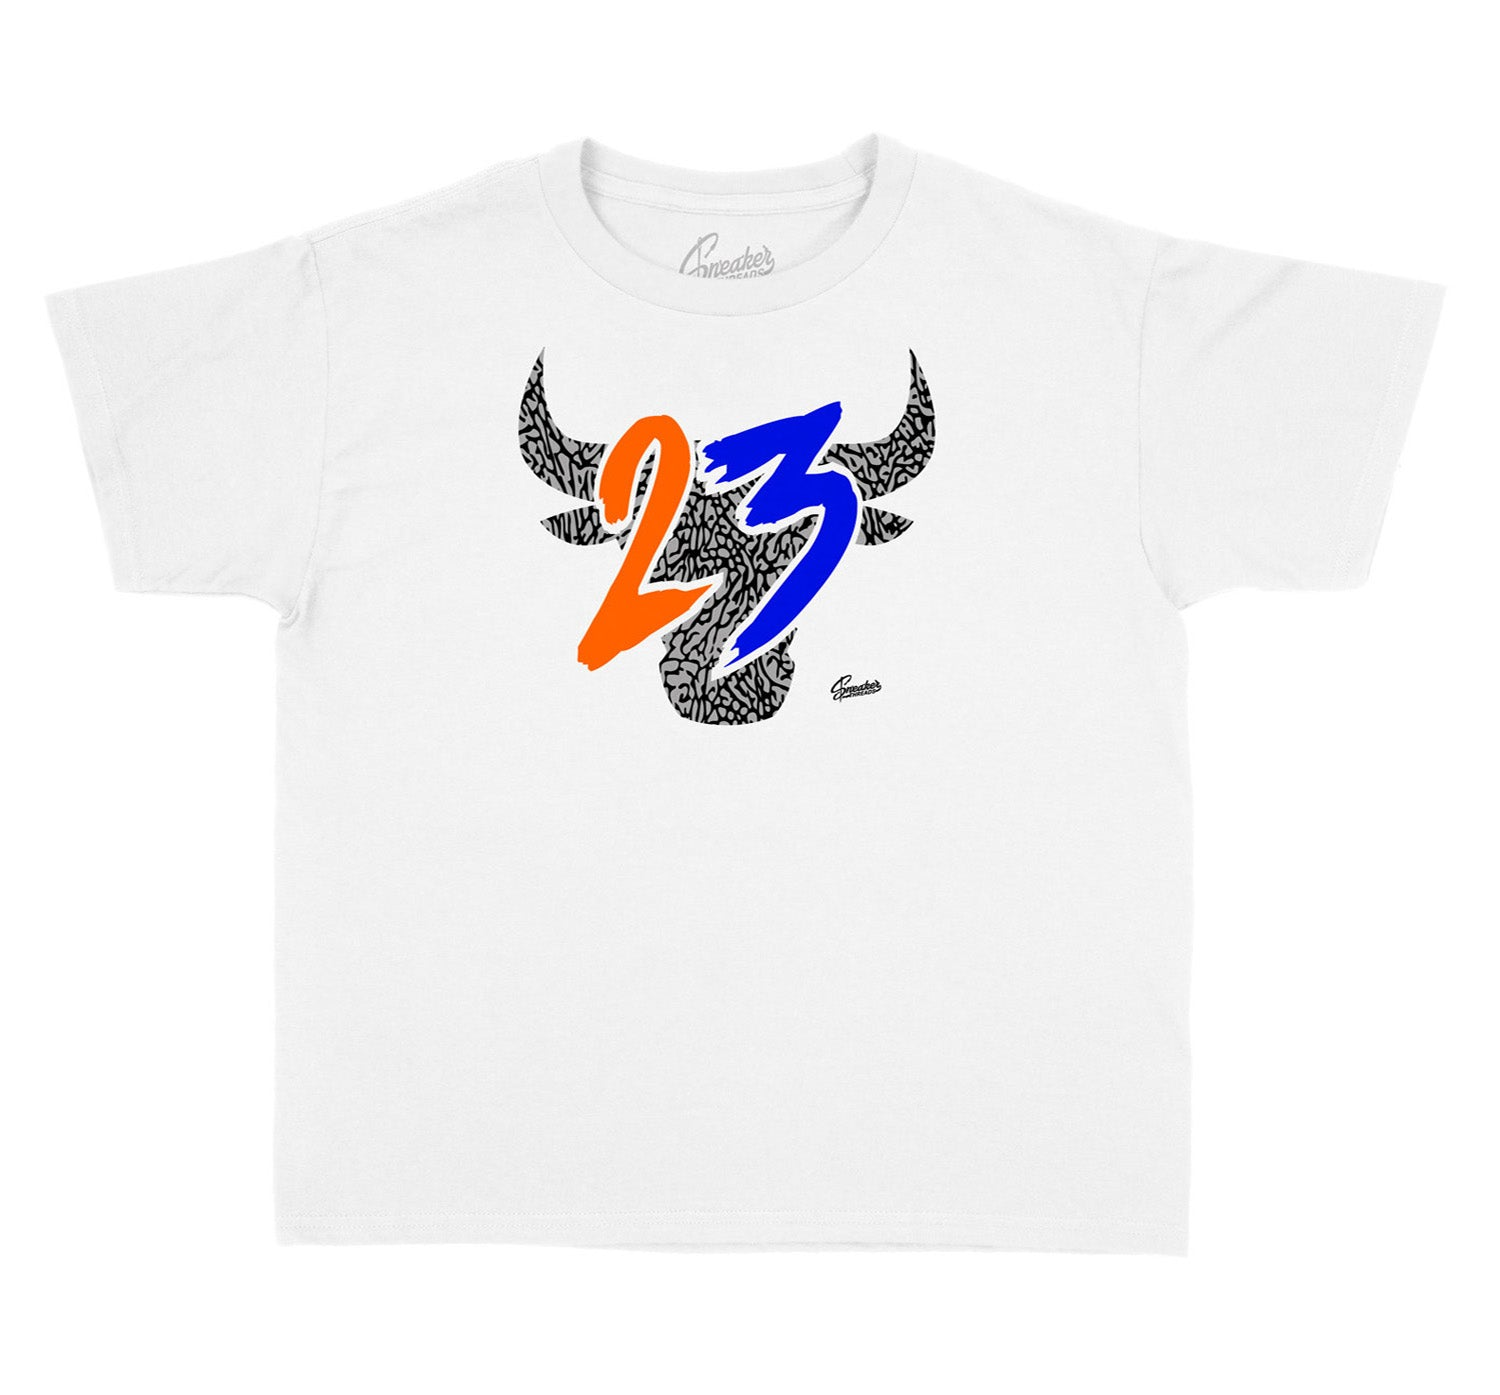 Jordan 3 knick kids sneaker matches kids shirts designed to match perfect